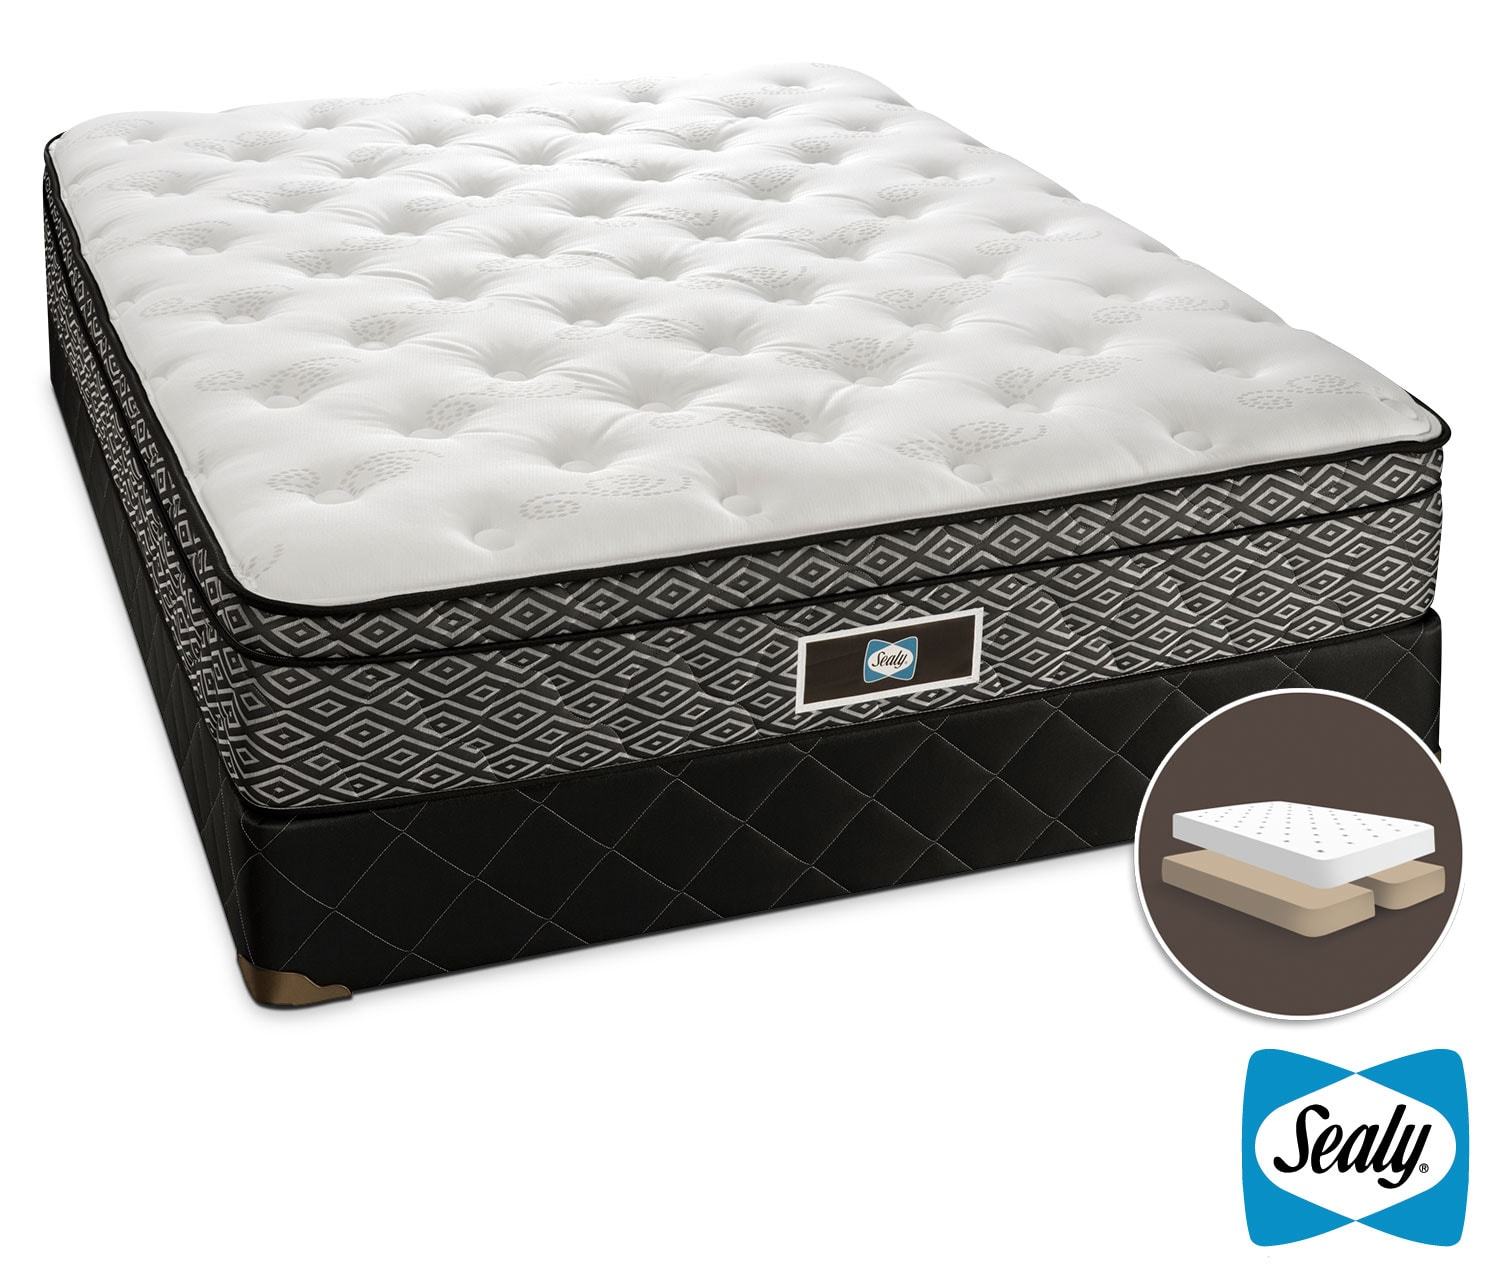 Mattresses and Bedding - Sealy Nero Cushion Firm Queen Mattress/Split Boxspring Set